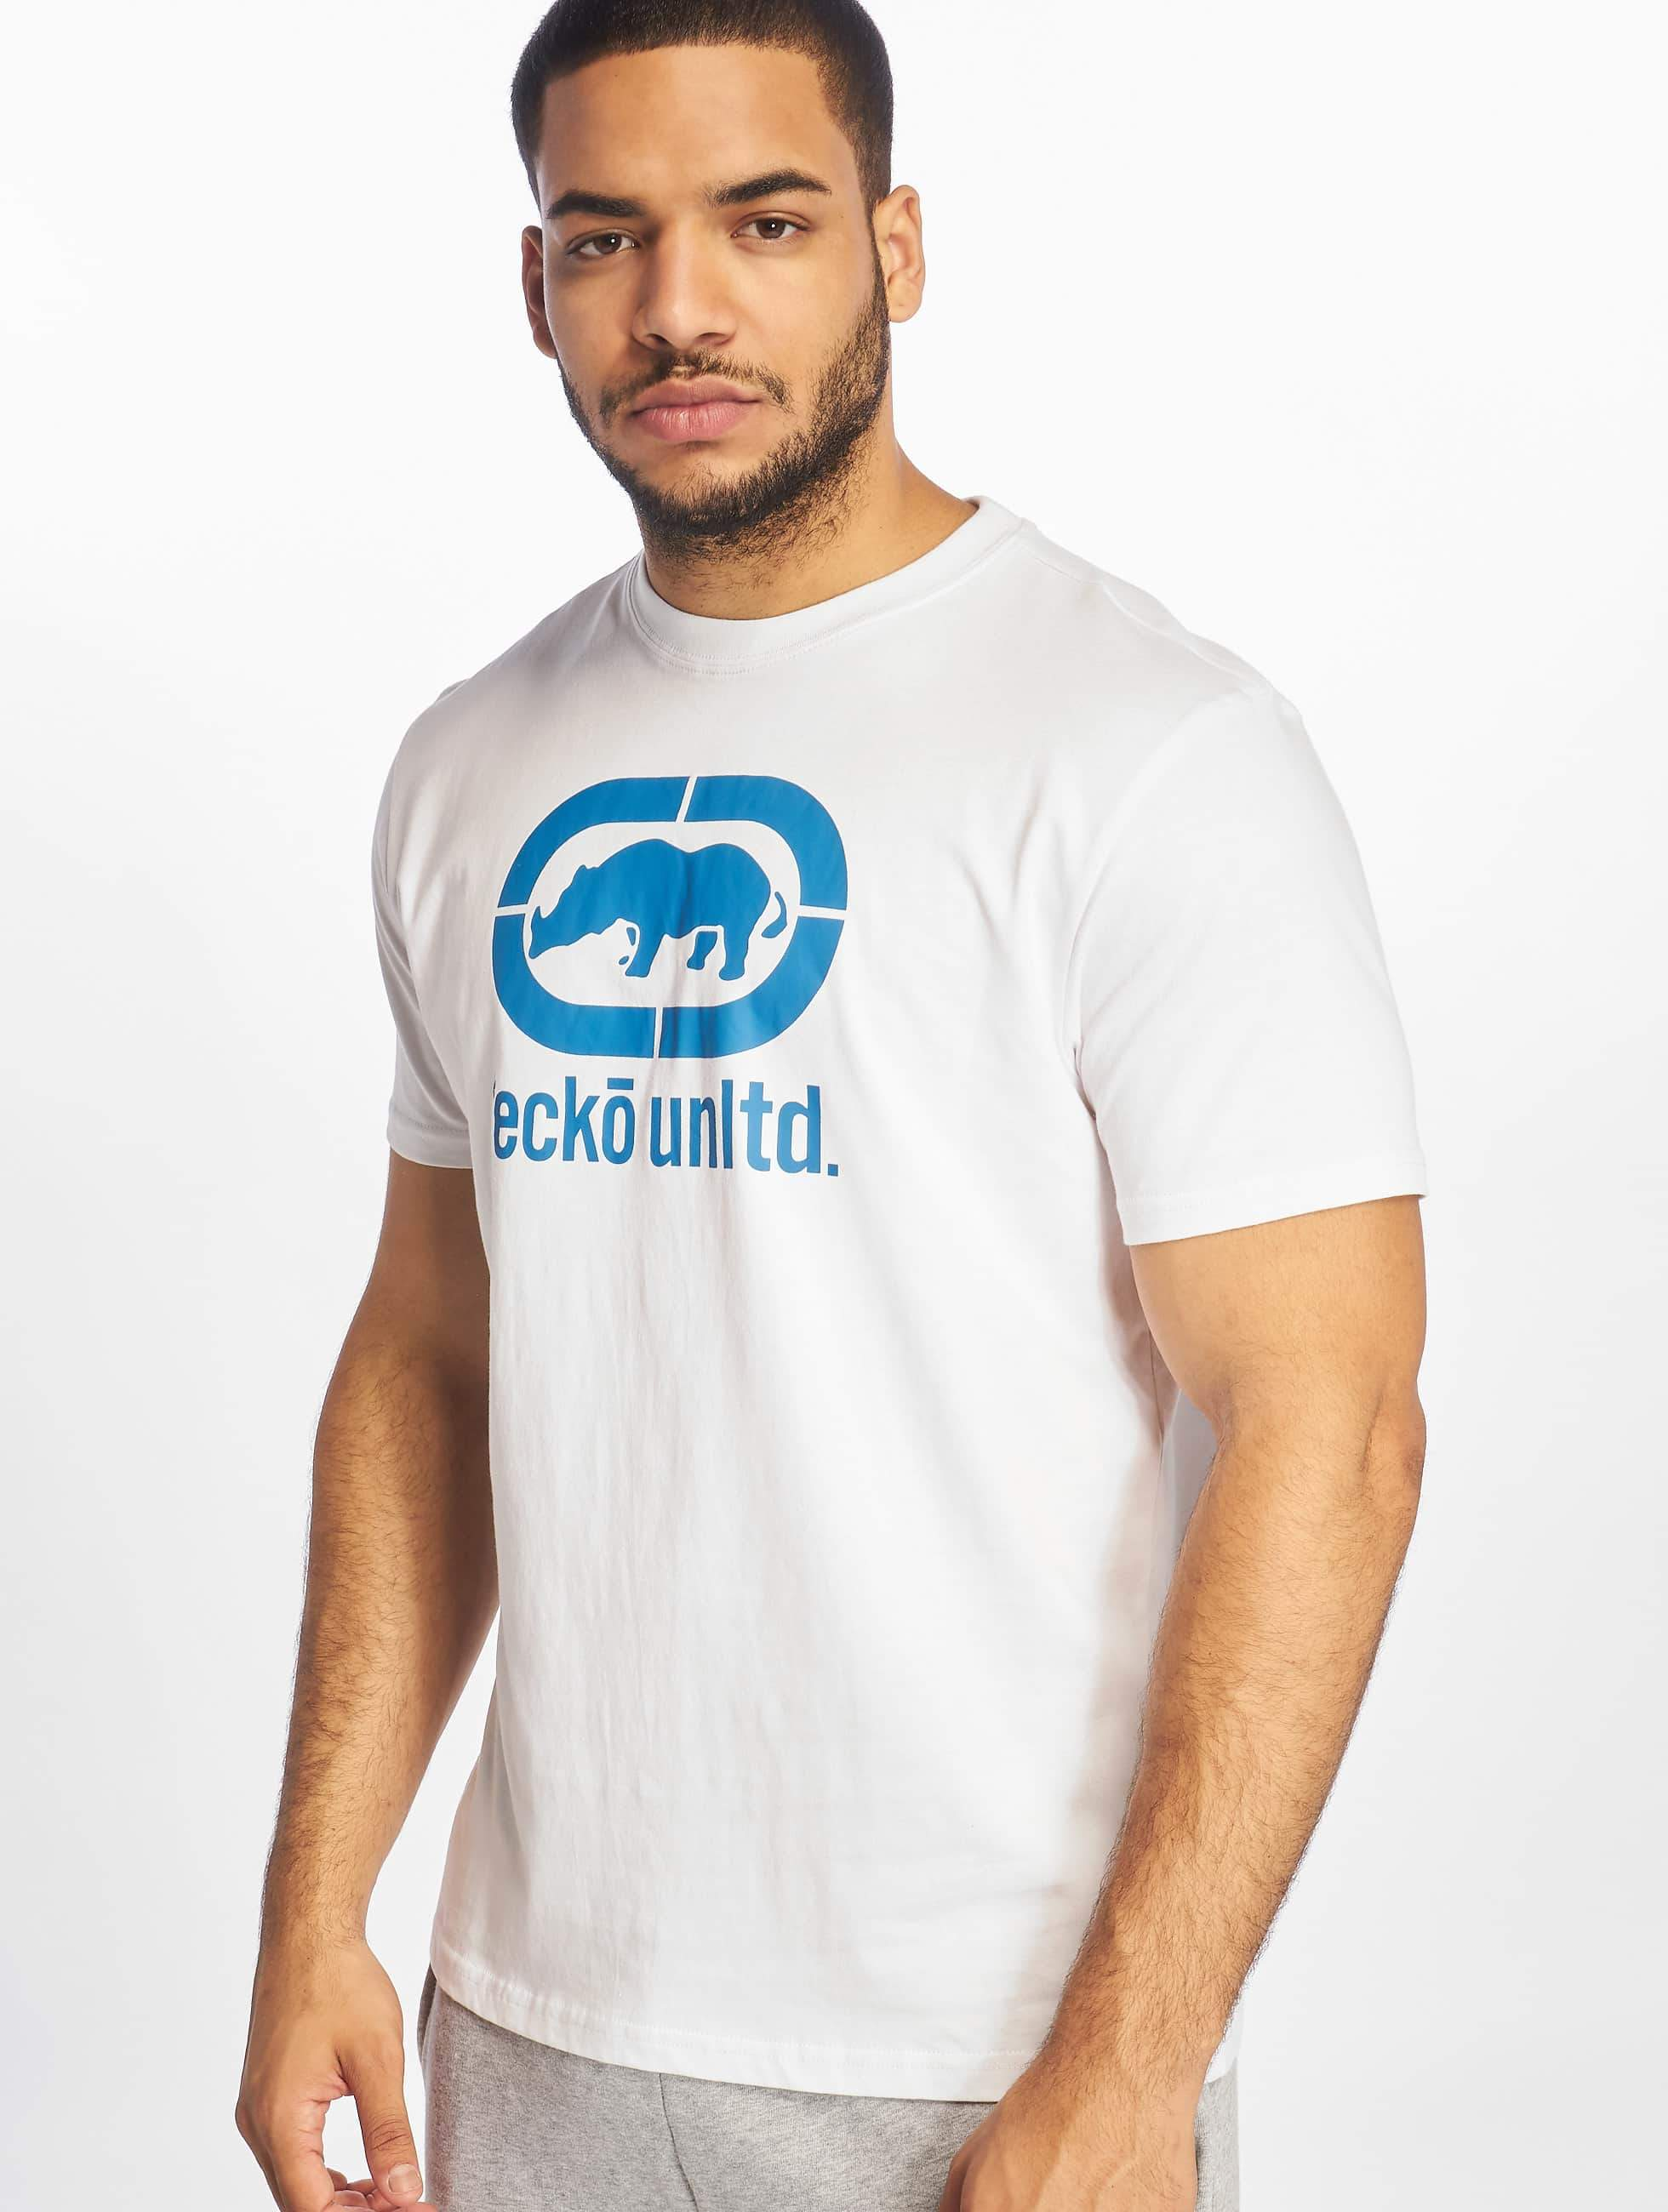 Ecko Unltd. / T-Shirt John Rhino in white XL